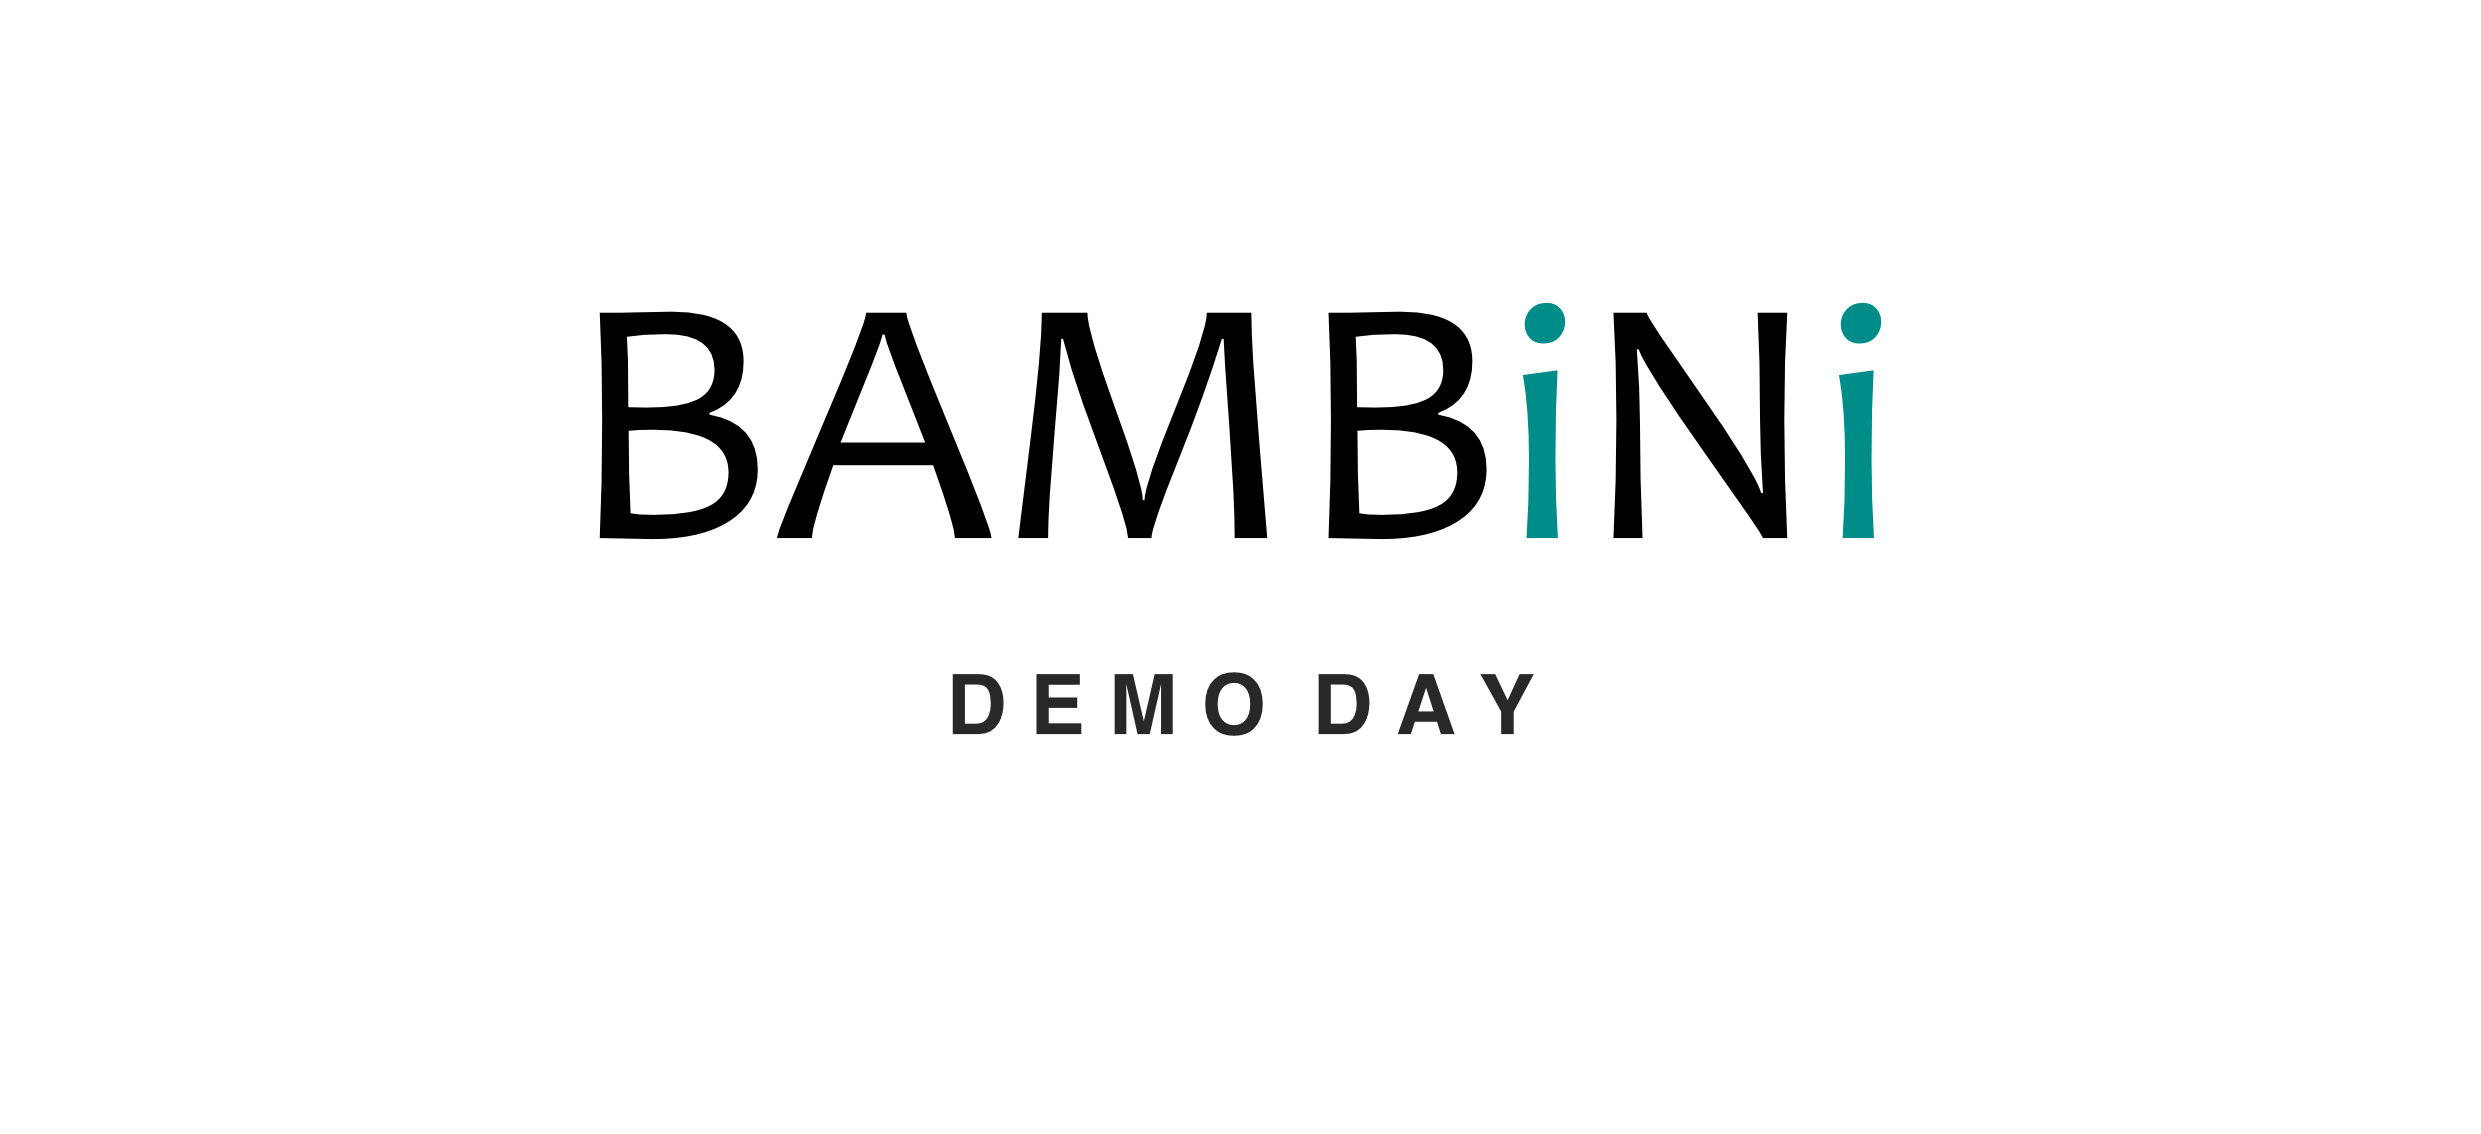 Book into a Demo Day